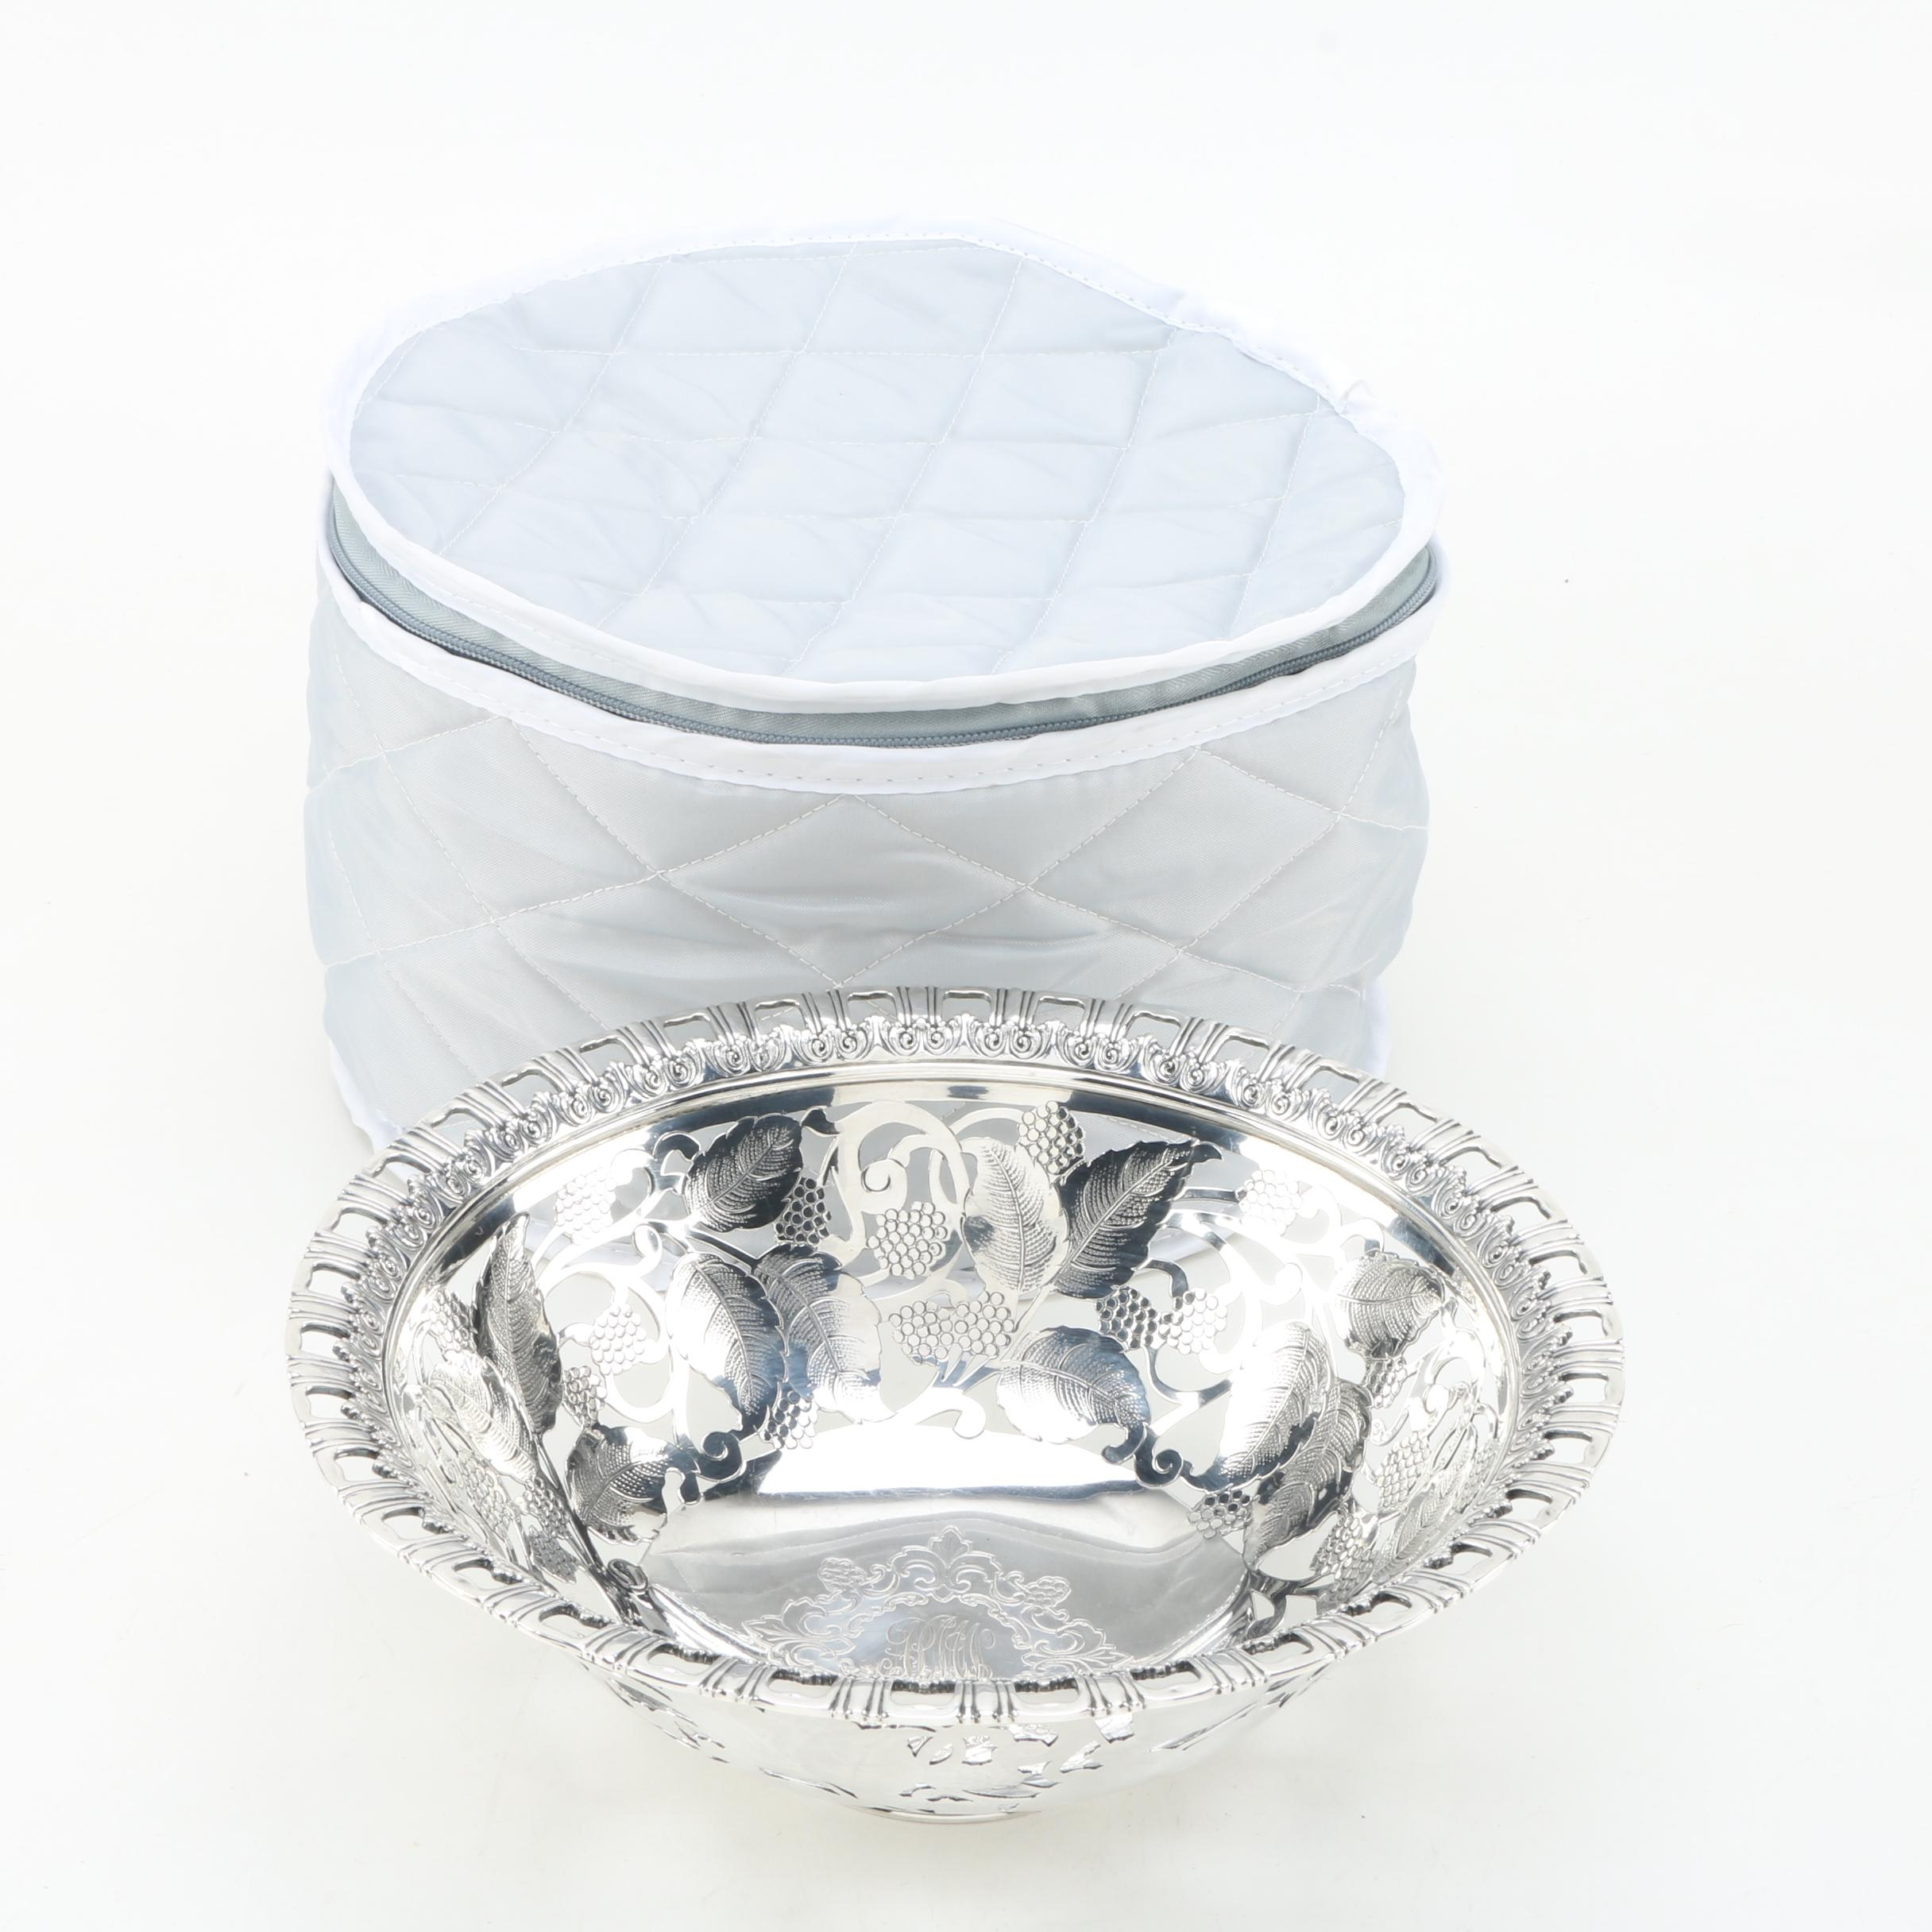 Antique Tiffany & Co. Monogrammed Sterling Silver Openwork Bowl